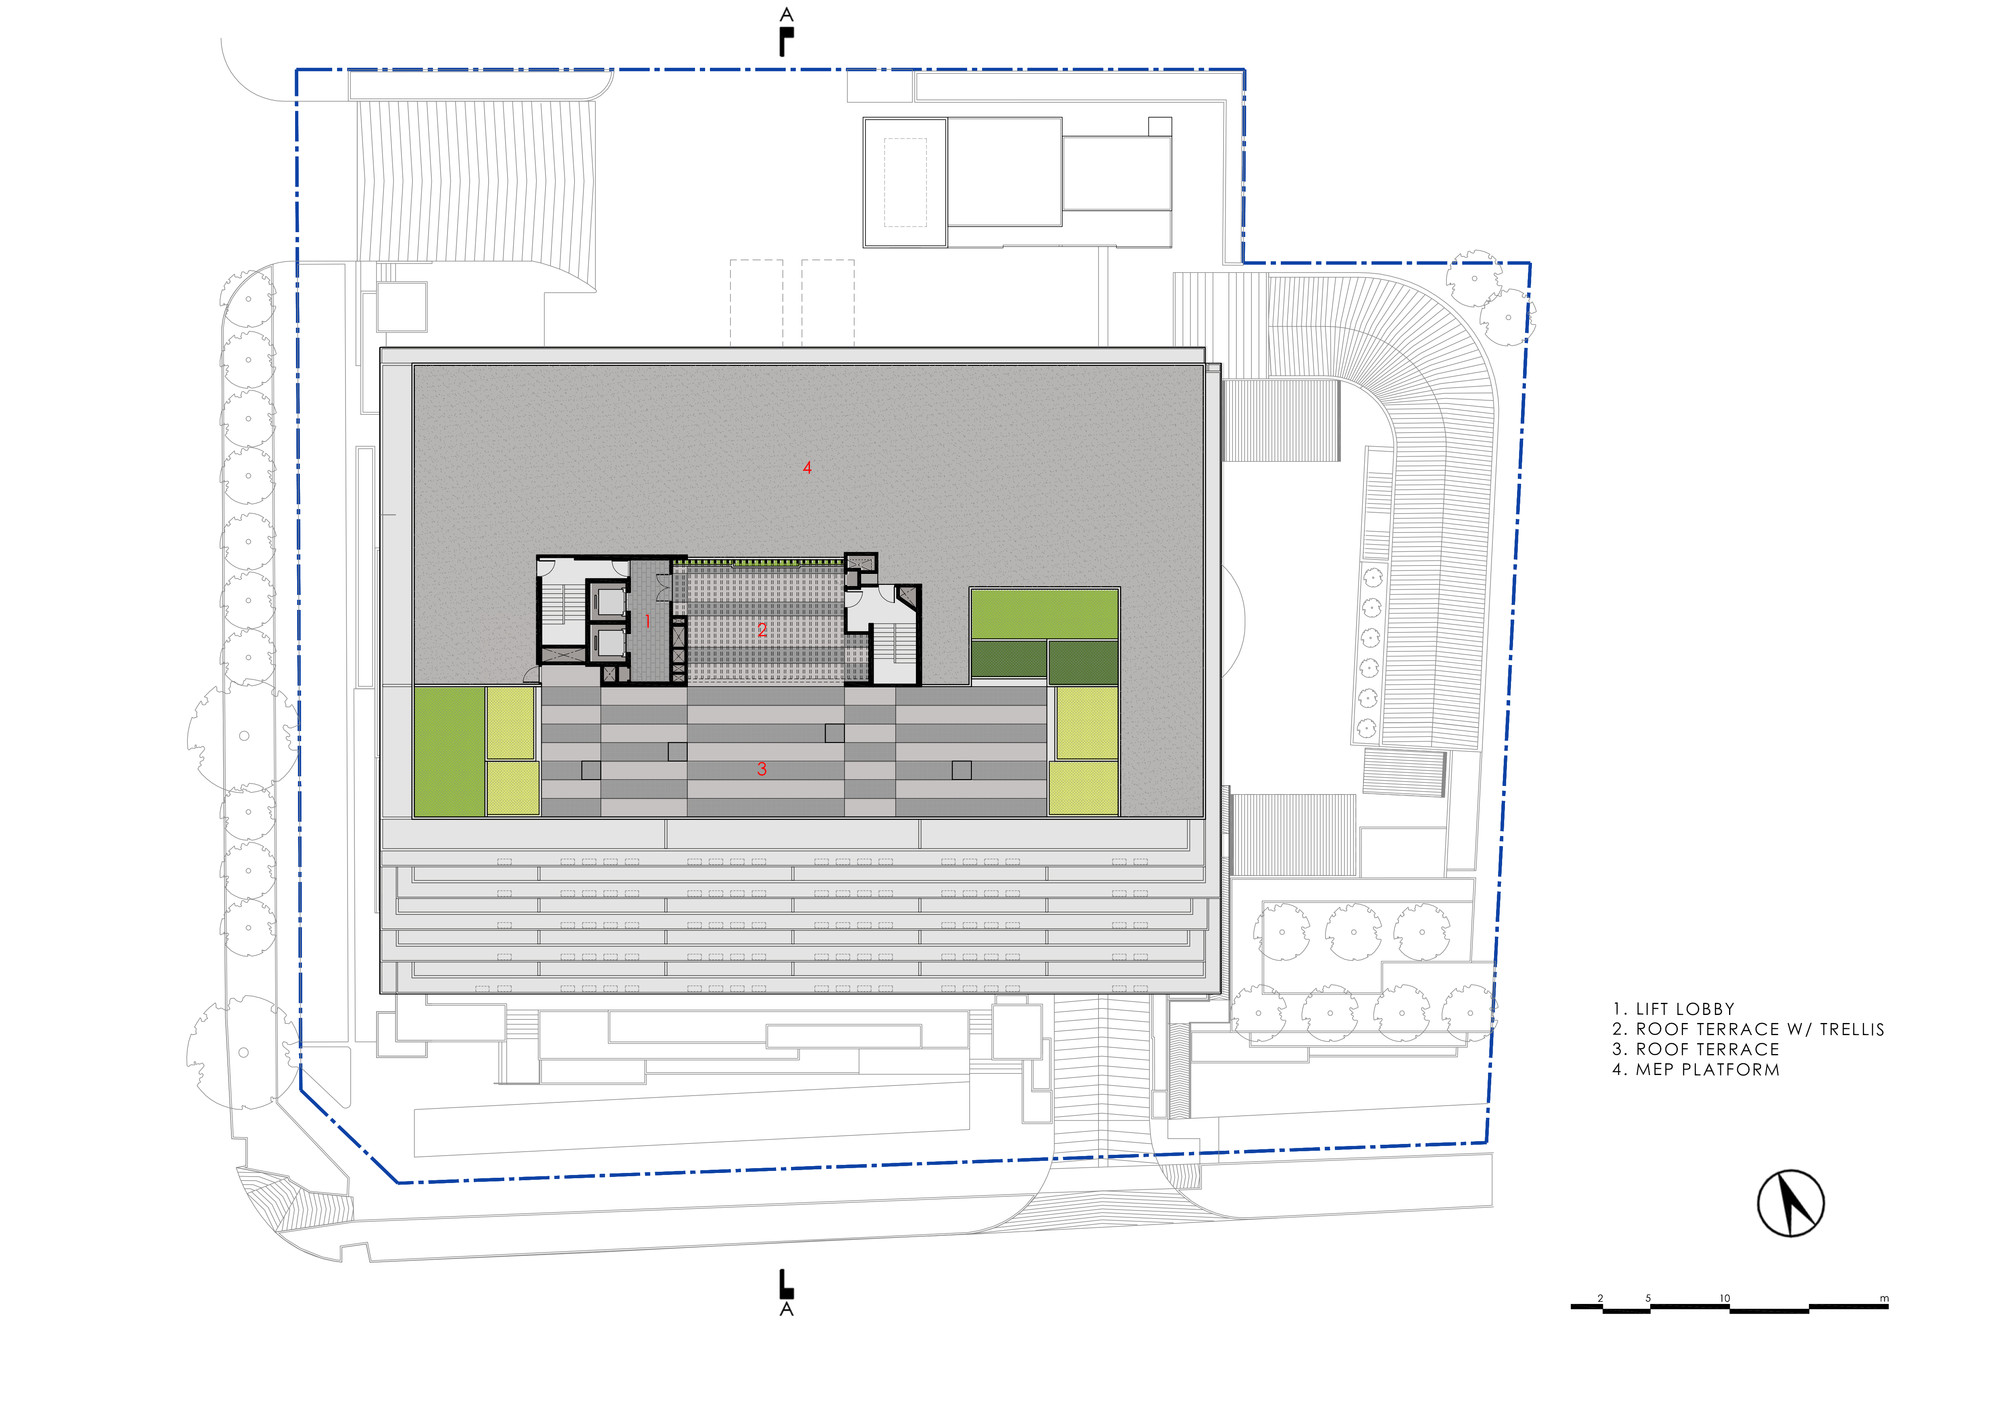 100 trellis plan trellis apartments whitneybell perry trellis plan gallery of 100pp office building ministry of design 16